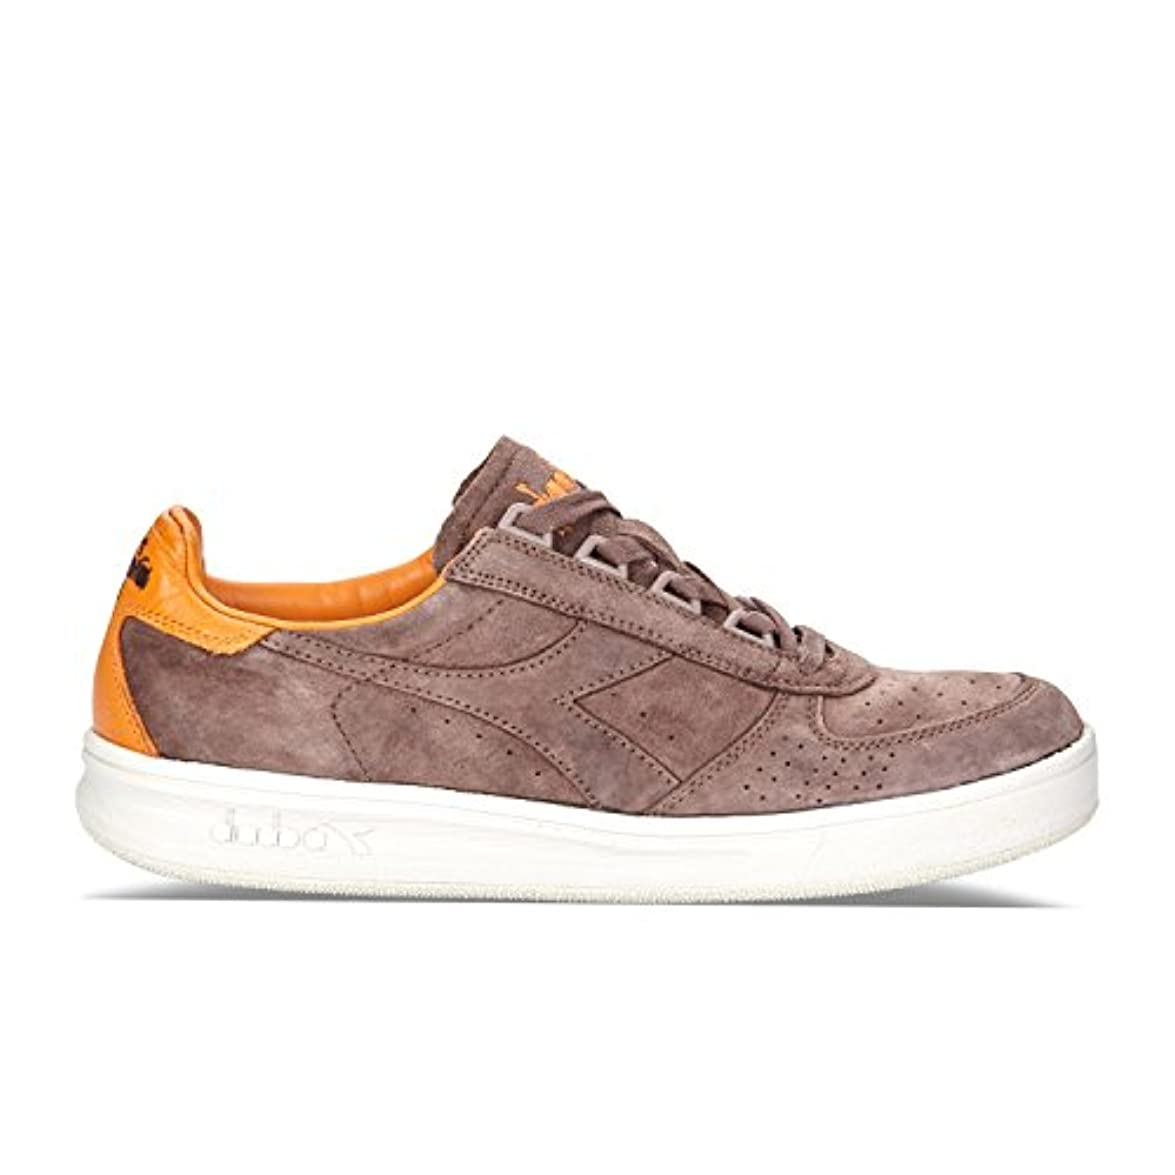 Diadora Heritage - Sneakers B elite S Sw Per Uomo E Donna It 42